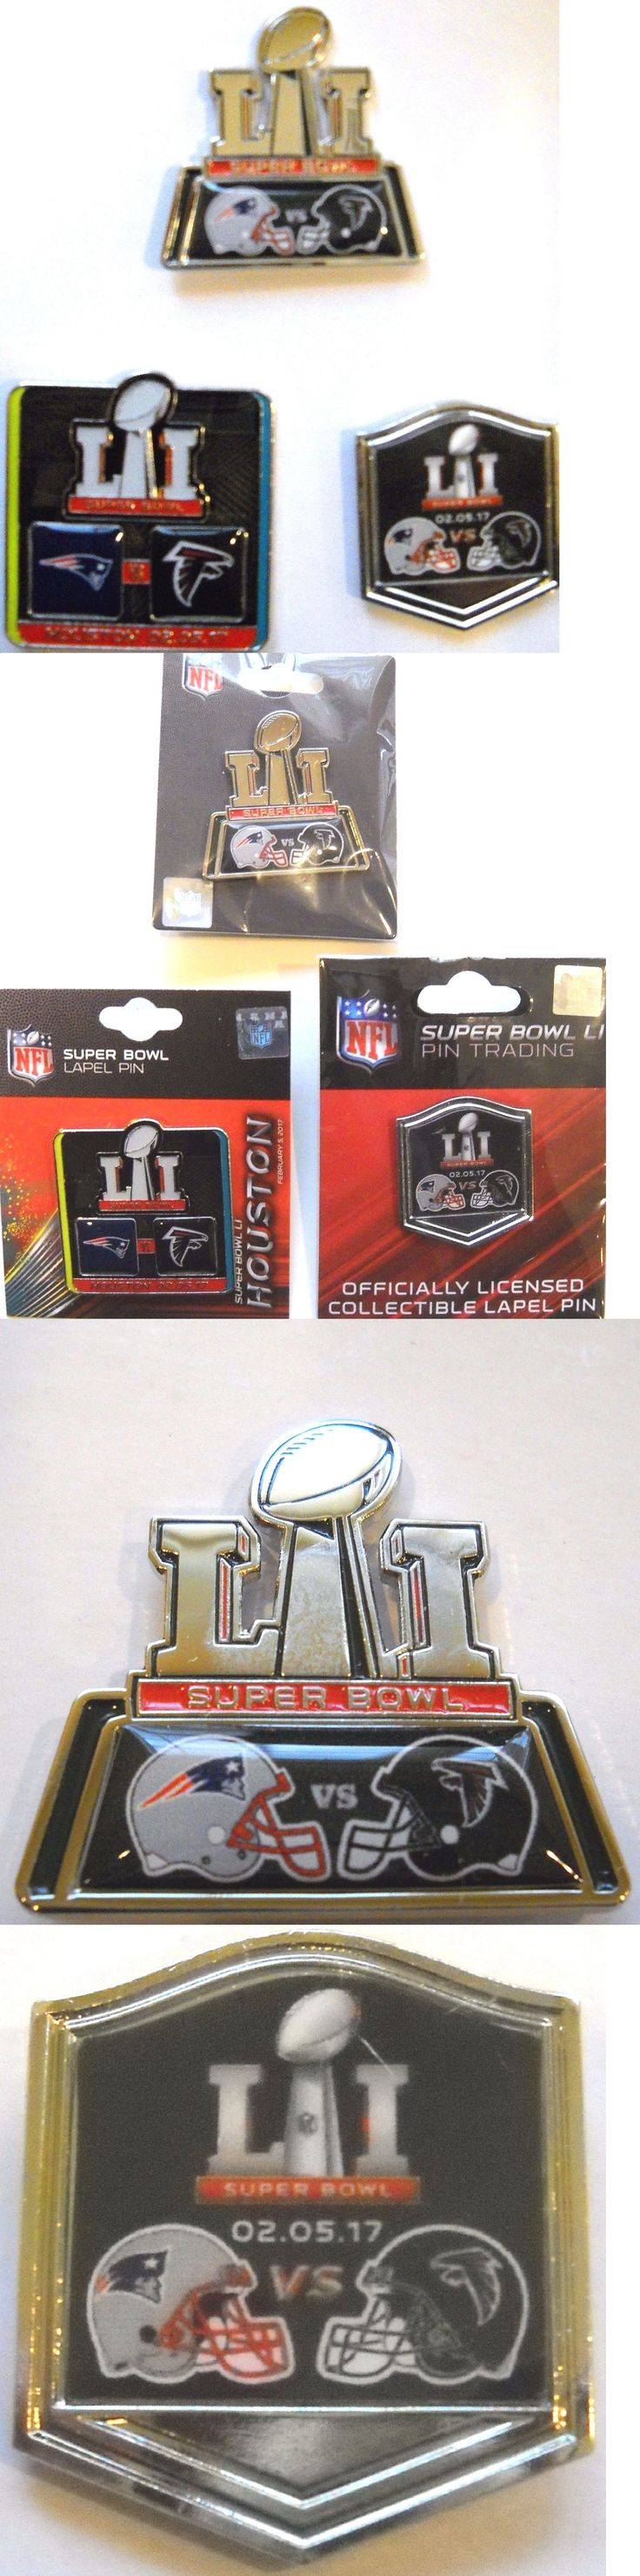 Pins 50130: 1 Set Of 3 Atlanta Falcons And New England Patriots Two-Team Super Bowl Li Pins -> BUY IT NOW ONLY: $44.99 on eBay!